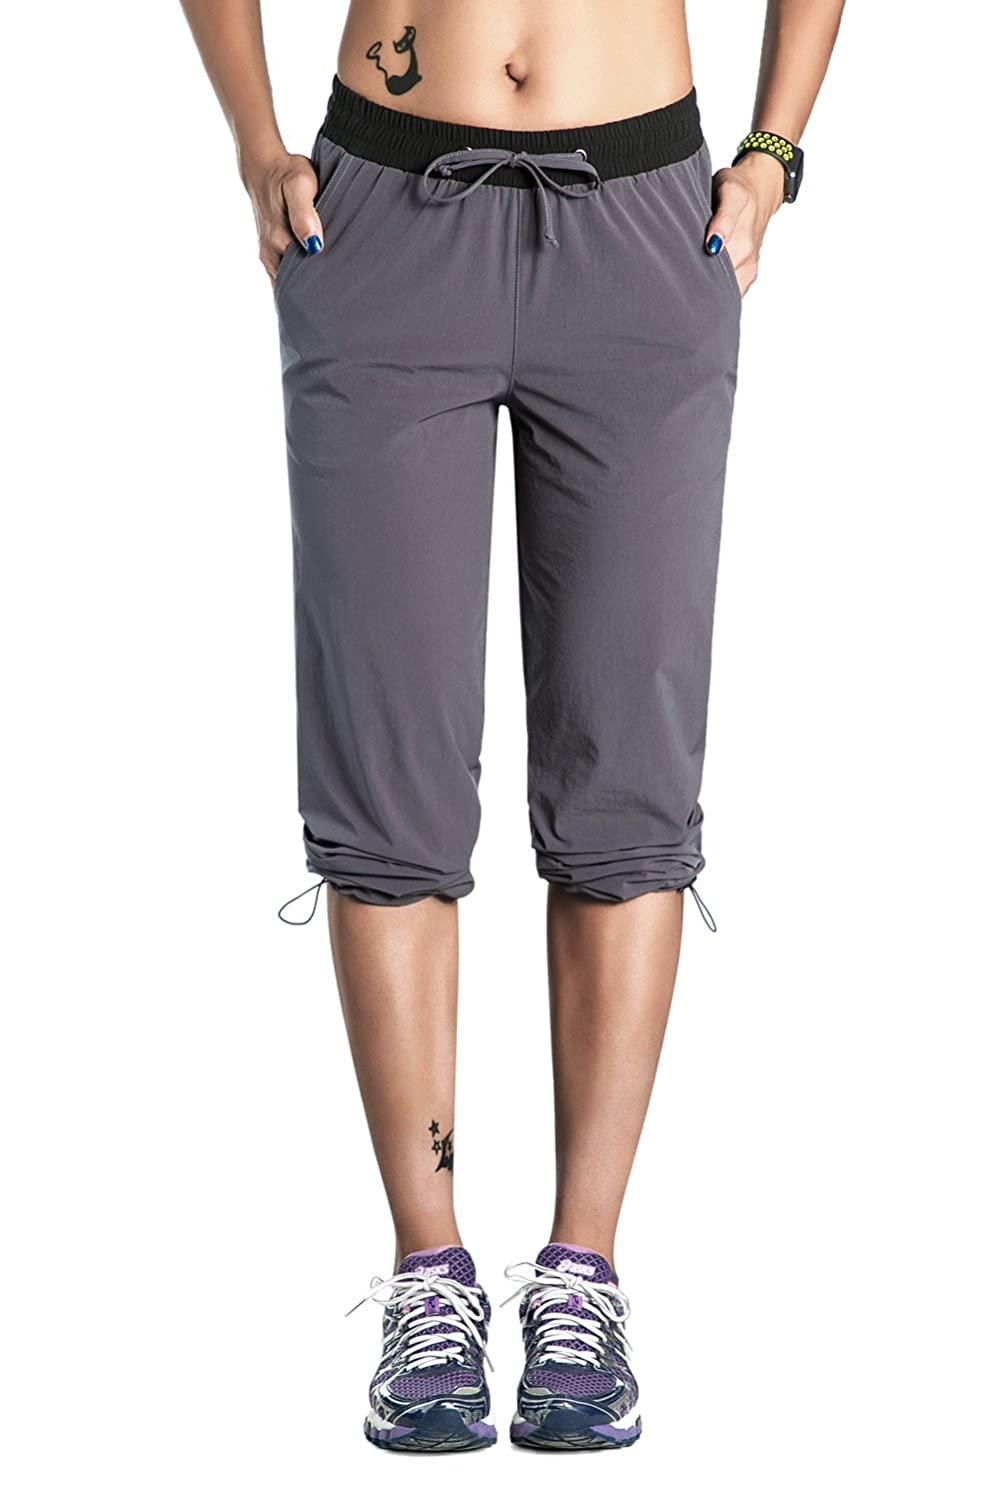 Nonwe Womens Outdoor Quick Drying Hiking Cargo Pants